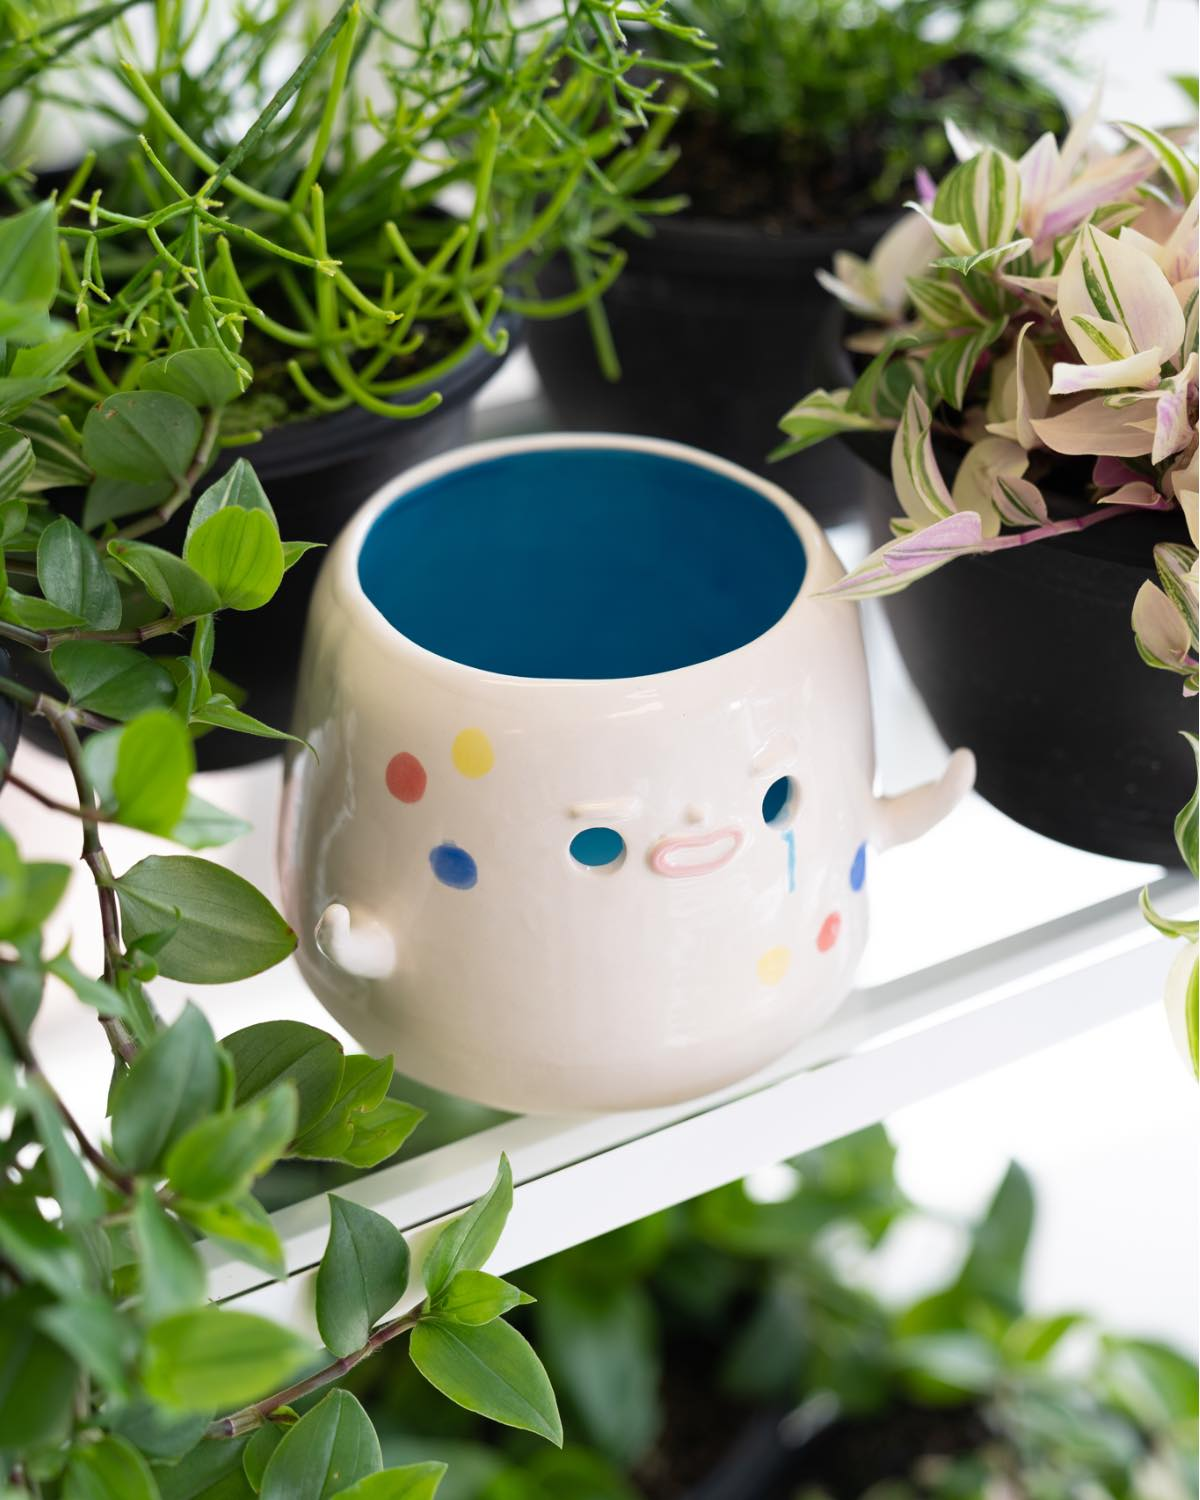 Hoyo Ceramic Pot by Mai Accents